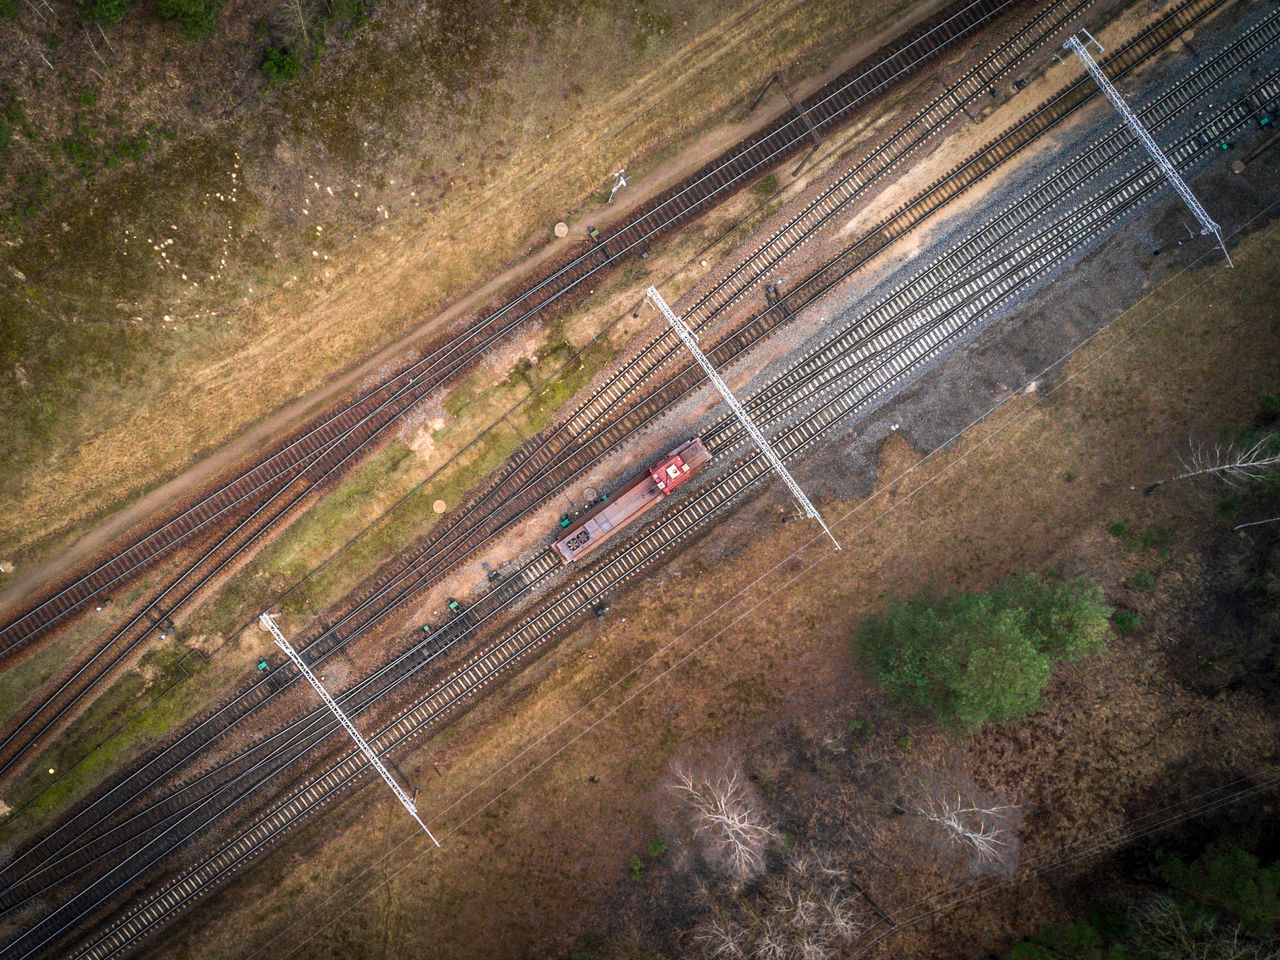 Railway and freight locomotive from above - Dji Mavic Pro drone photo Aerial View Dji DJI Mavic Pro Drone  Dronephotography Droneshot Economy Freight From Above  High Angle View Infrastructure Landscape Locomotive Looking Down Looking Down From Above Mavicpro Railroad Track Railway Railway Track Red Scenics Track Train Transportation Work